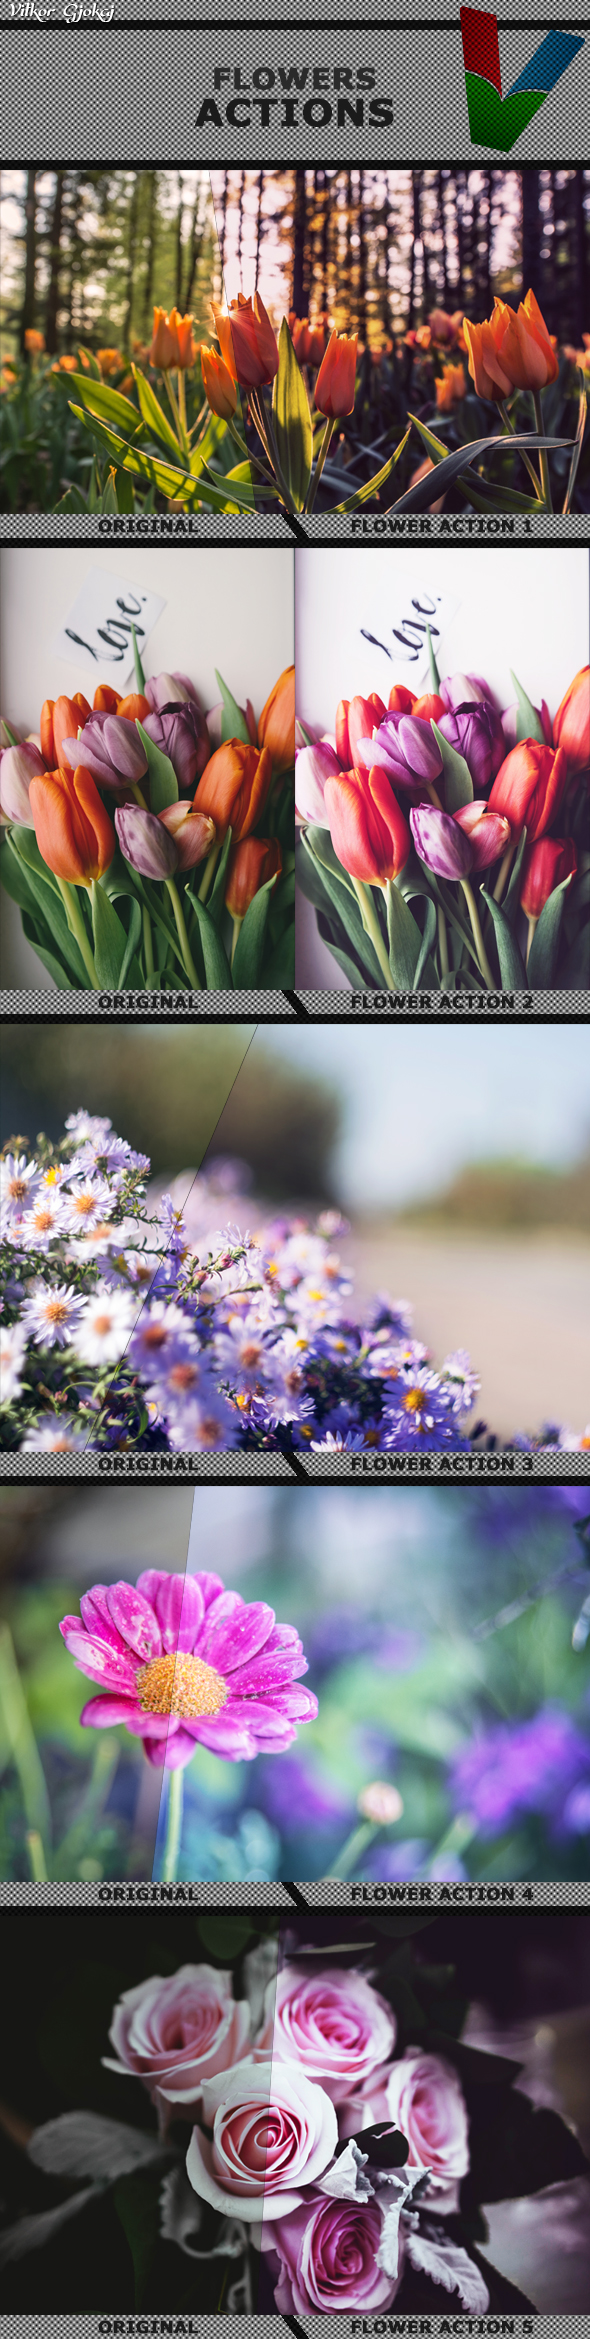 Flowers Photoshop Actions 1 - Photo Effects Actions